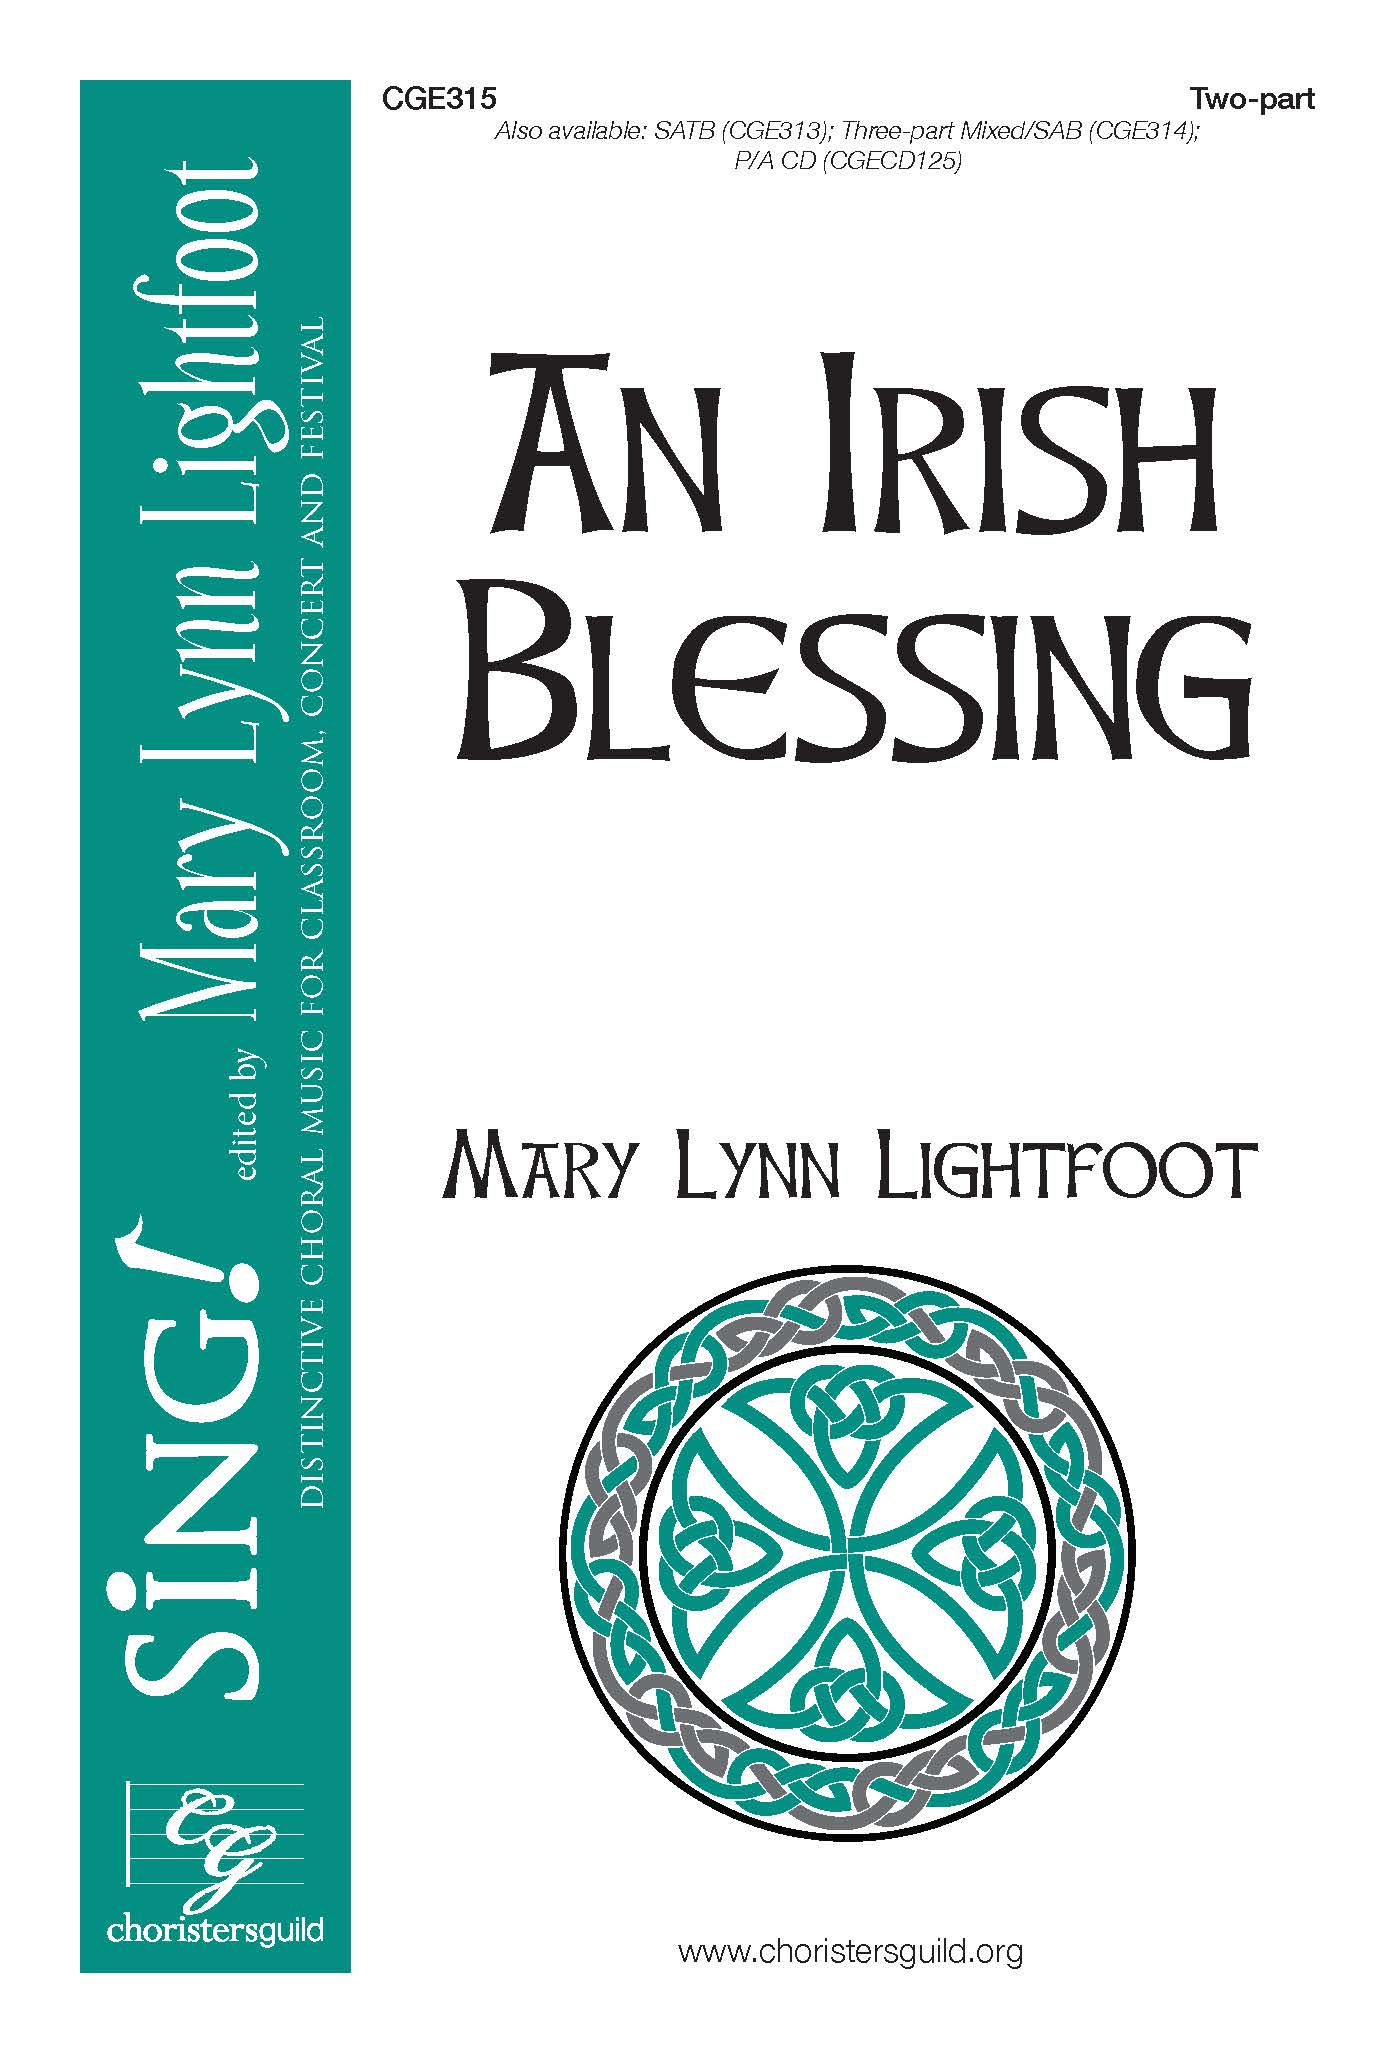 An Irish Blessing - Two-part